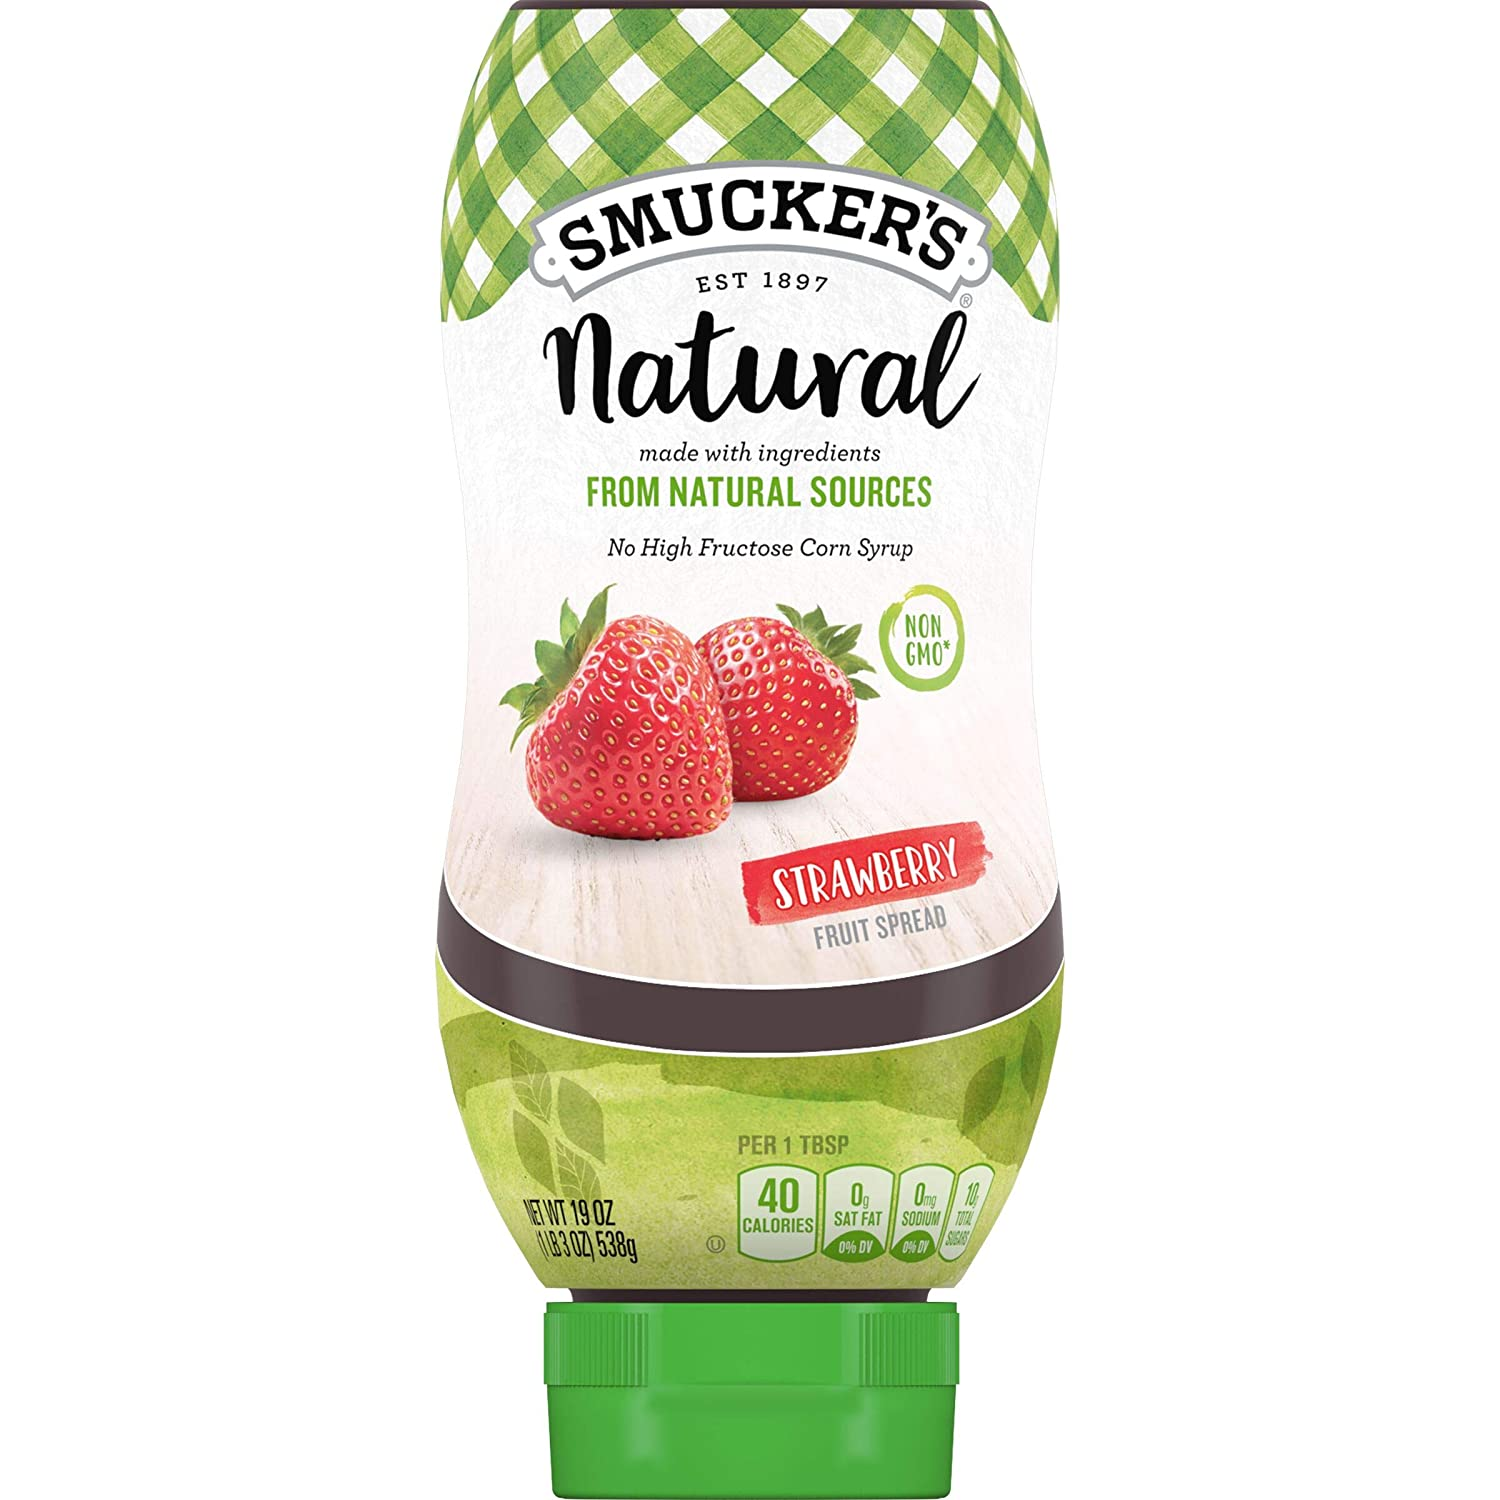 Smucker's Natural Strawberry Squeezable Fruit Spread, 19 Ounces